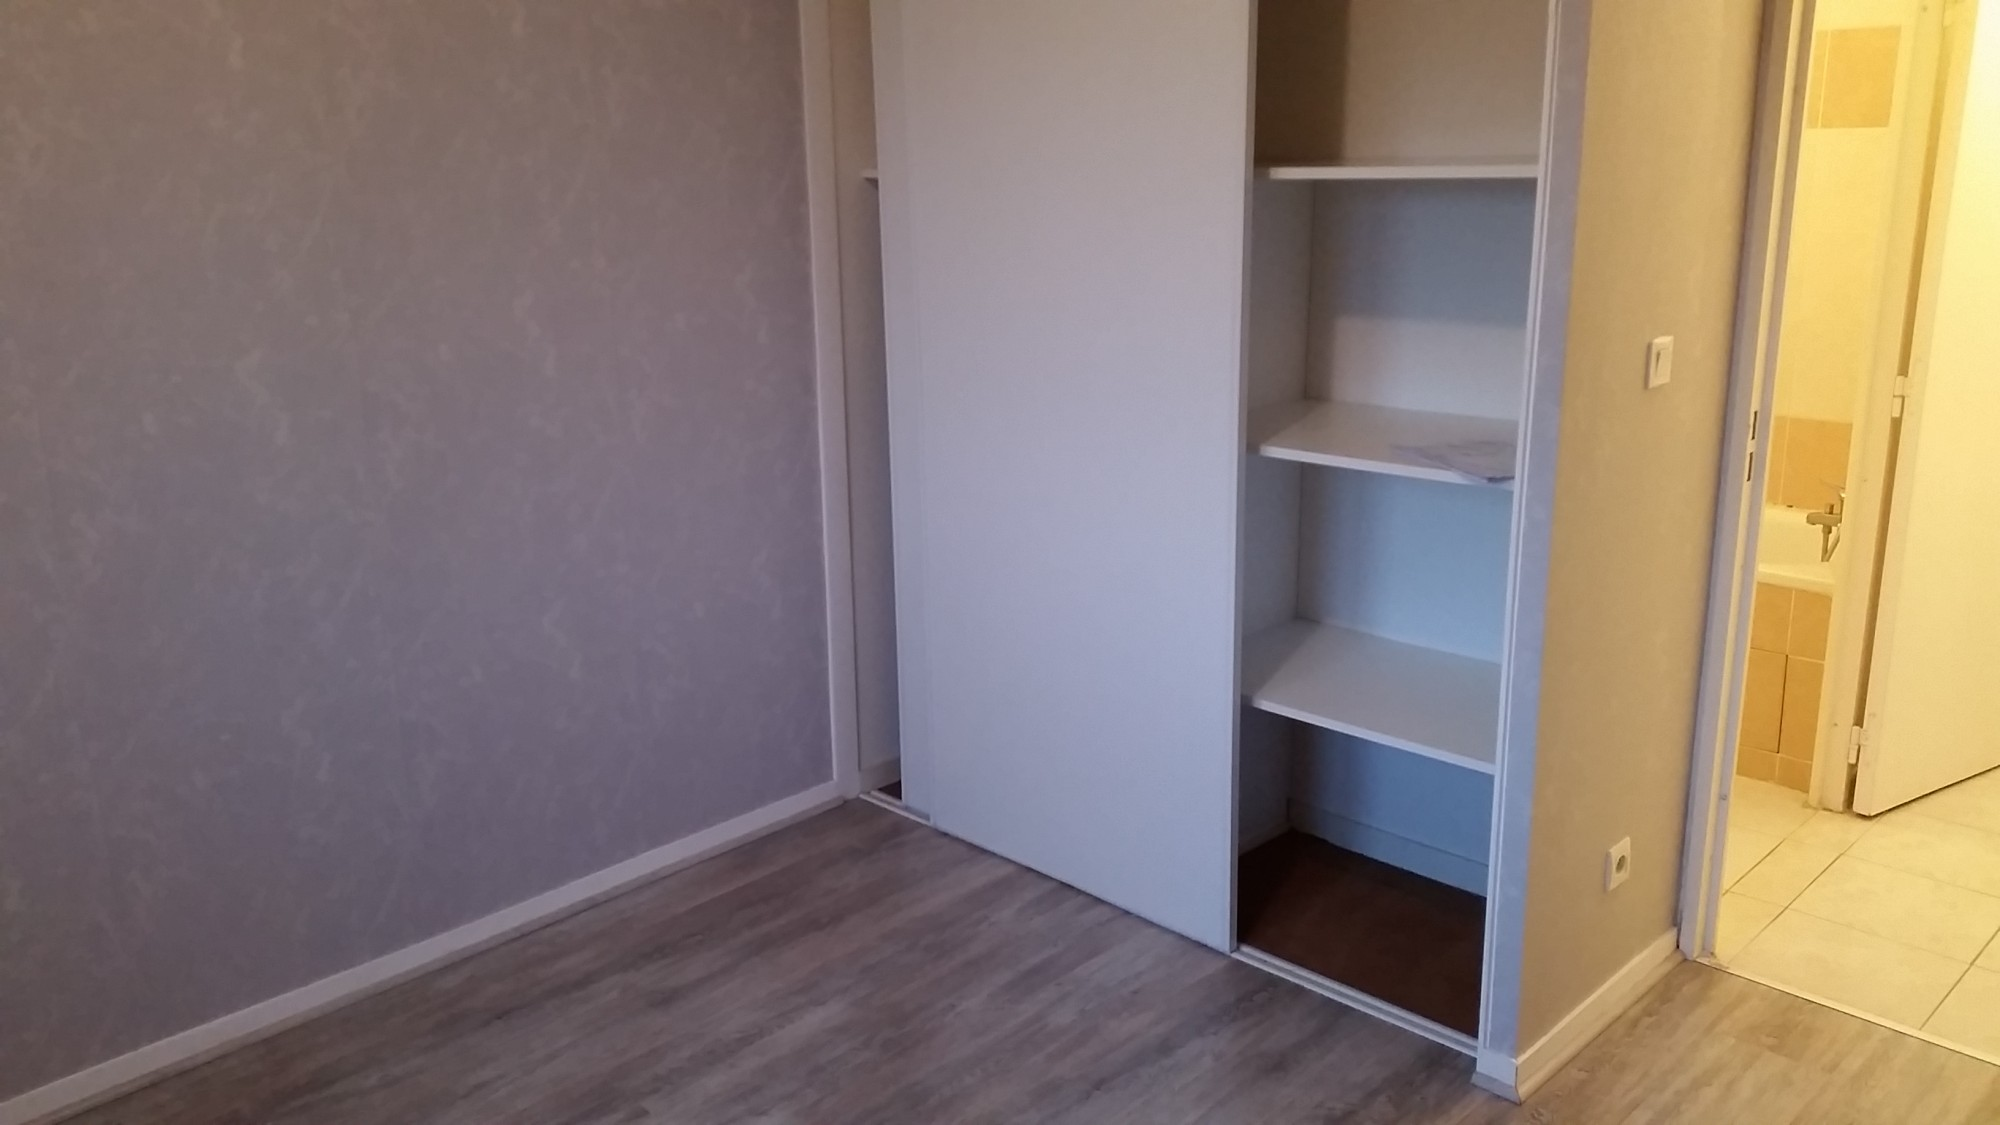 Location t2 guilherand granges en dernier etage avec parking location agence immobili re - Appartement guilherand granges ...